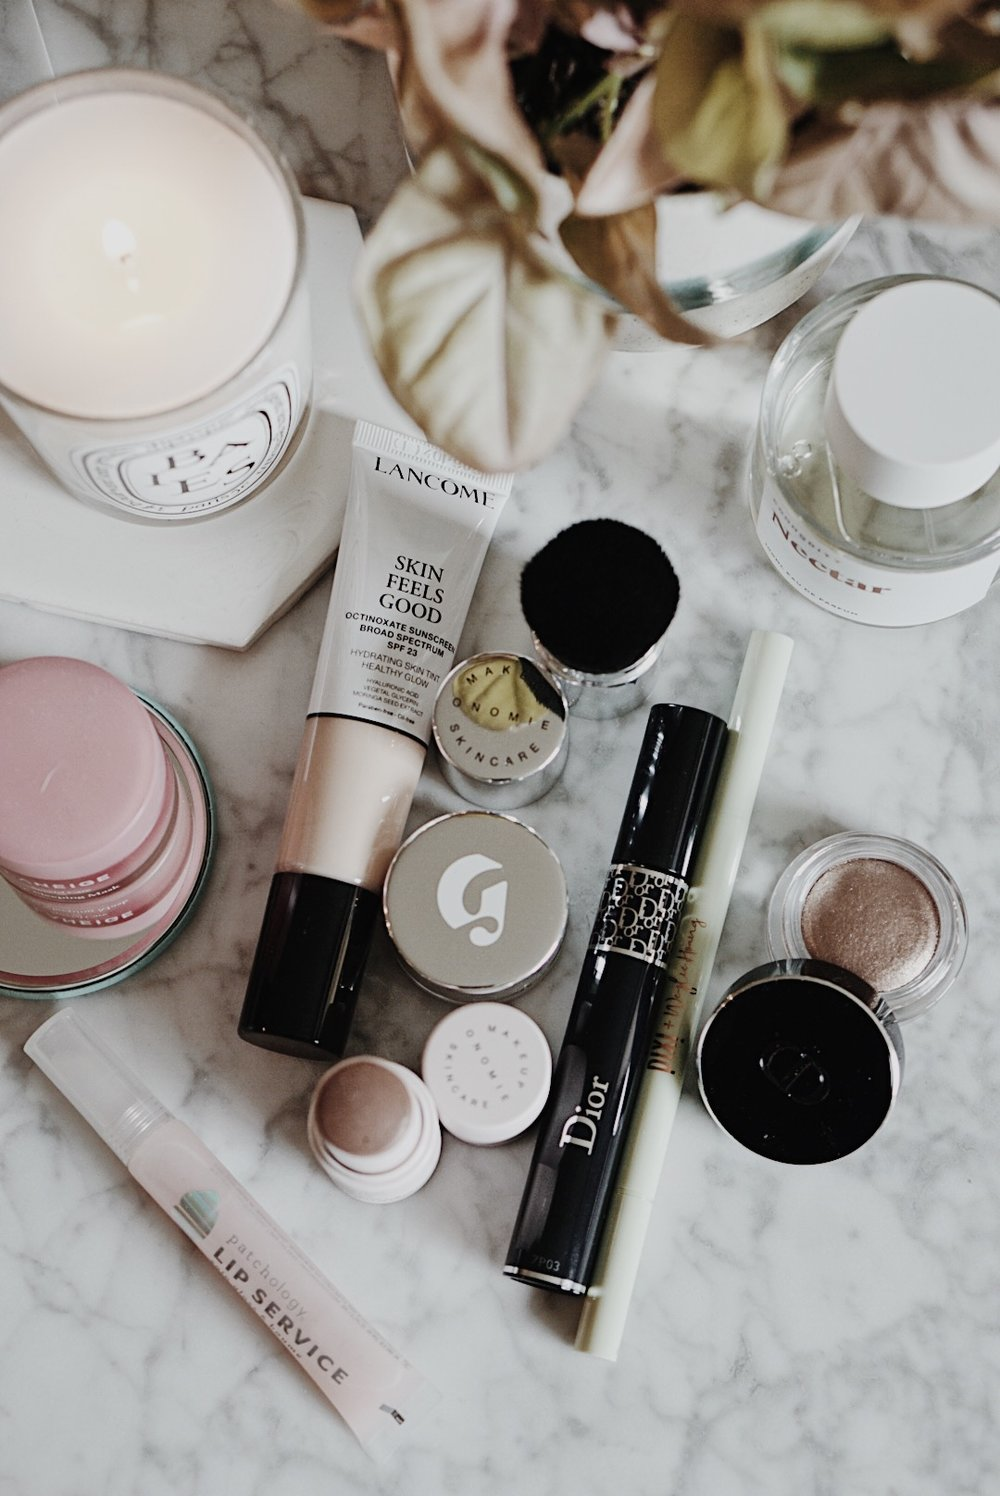 CHY Makeup Shakeup: Lancome, Glossier, Dior, Pixi, Laneige, Onomie, Patchology, COmmodity